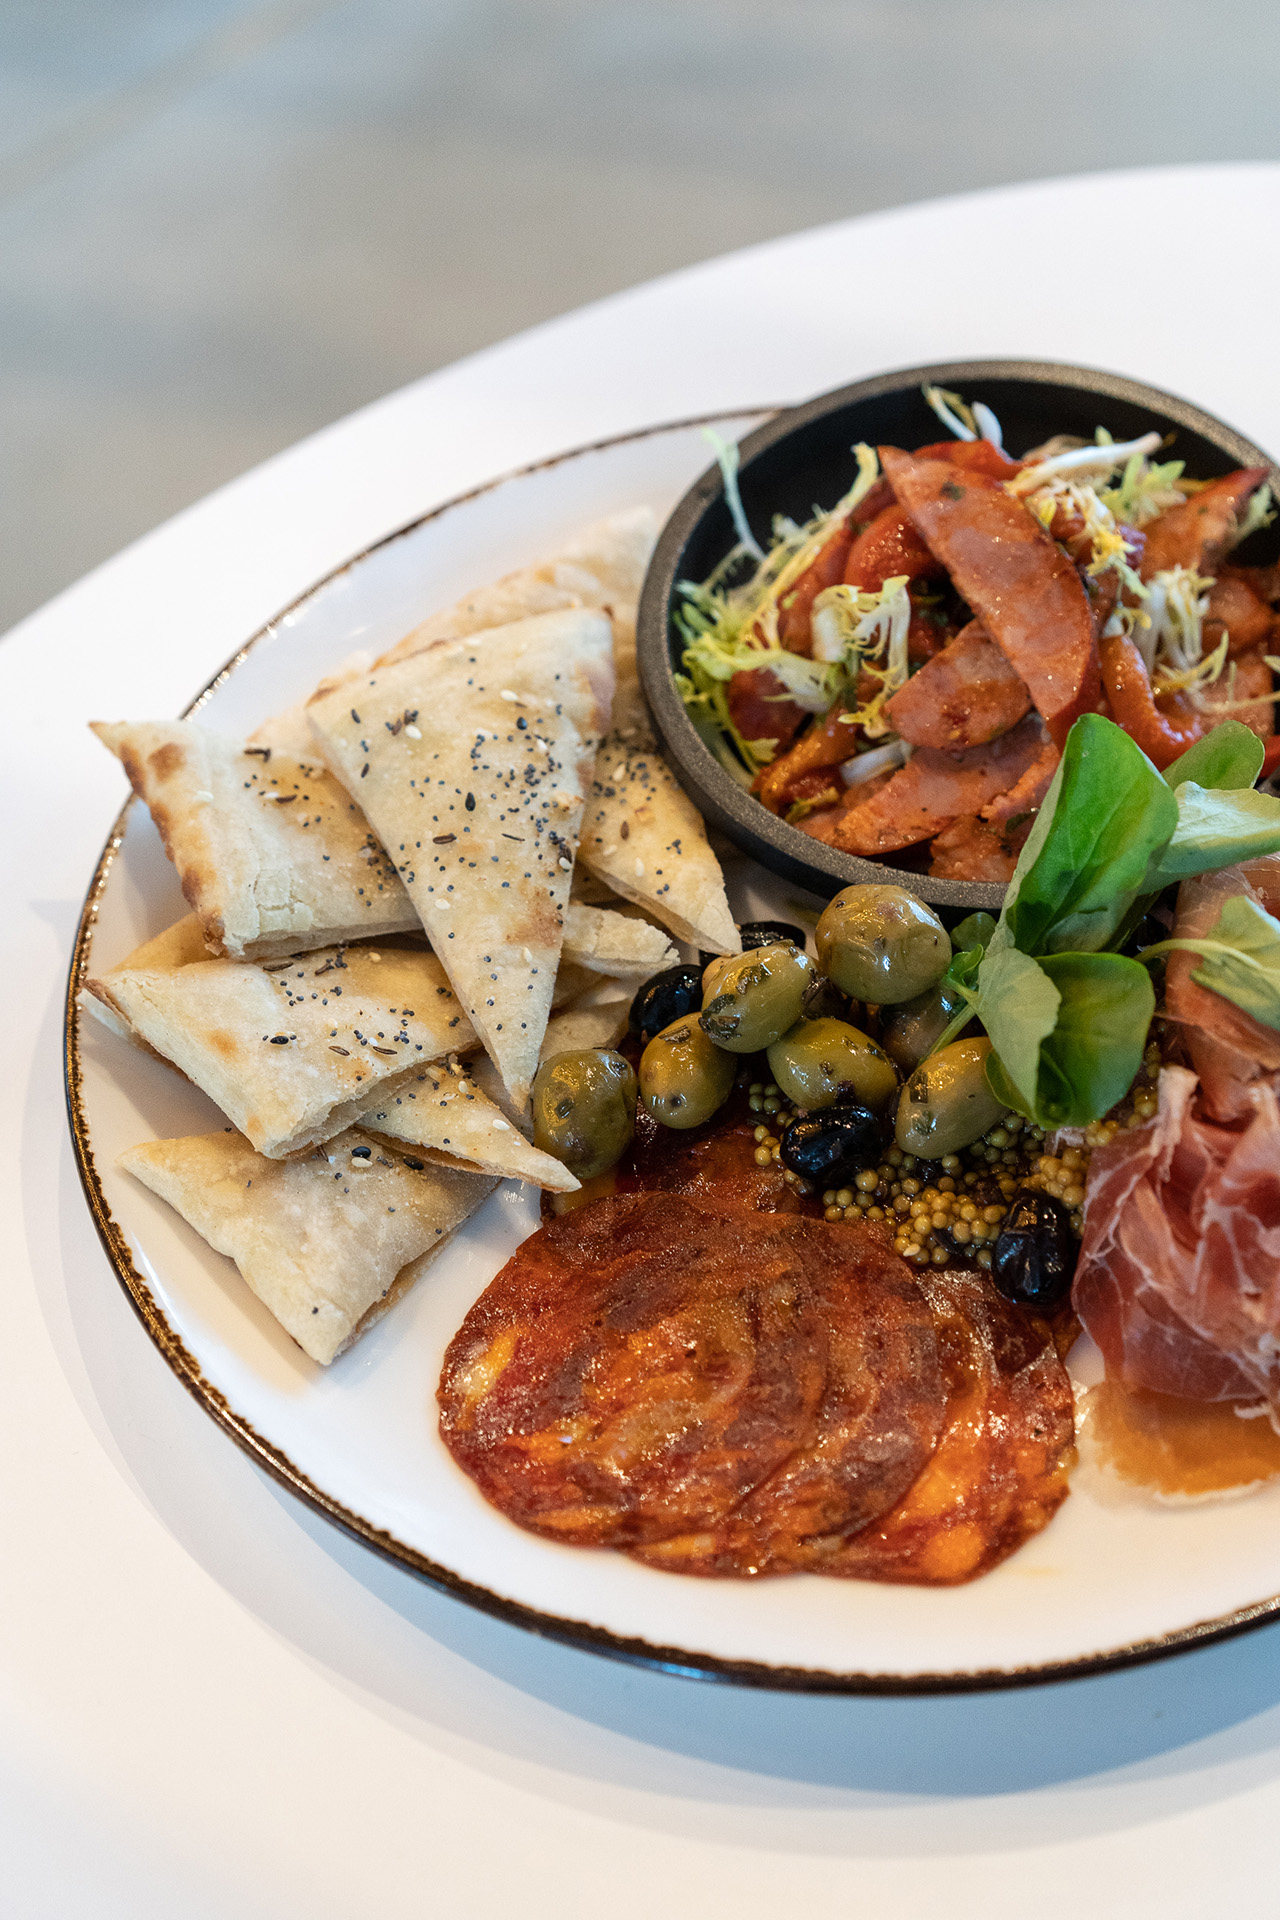 Charcuterie platter perfect for sharing.